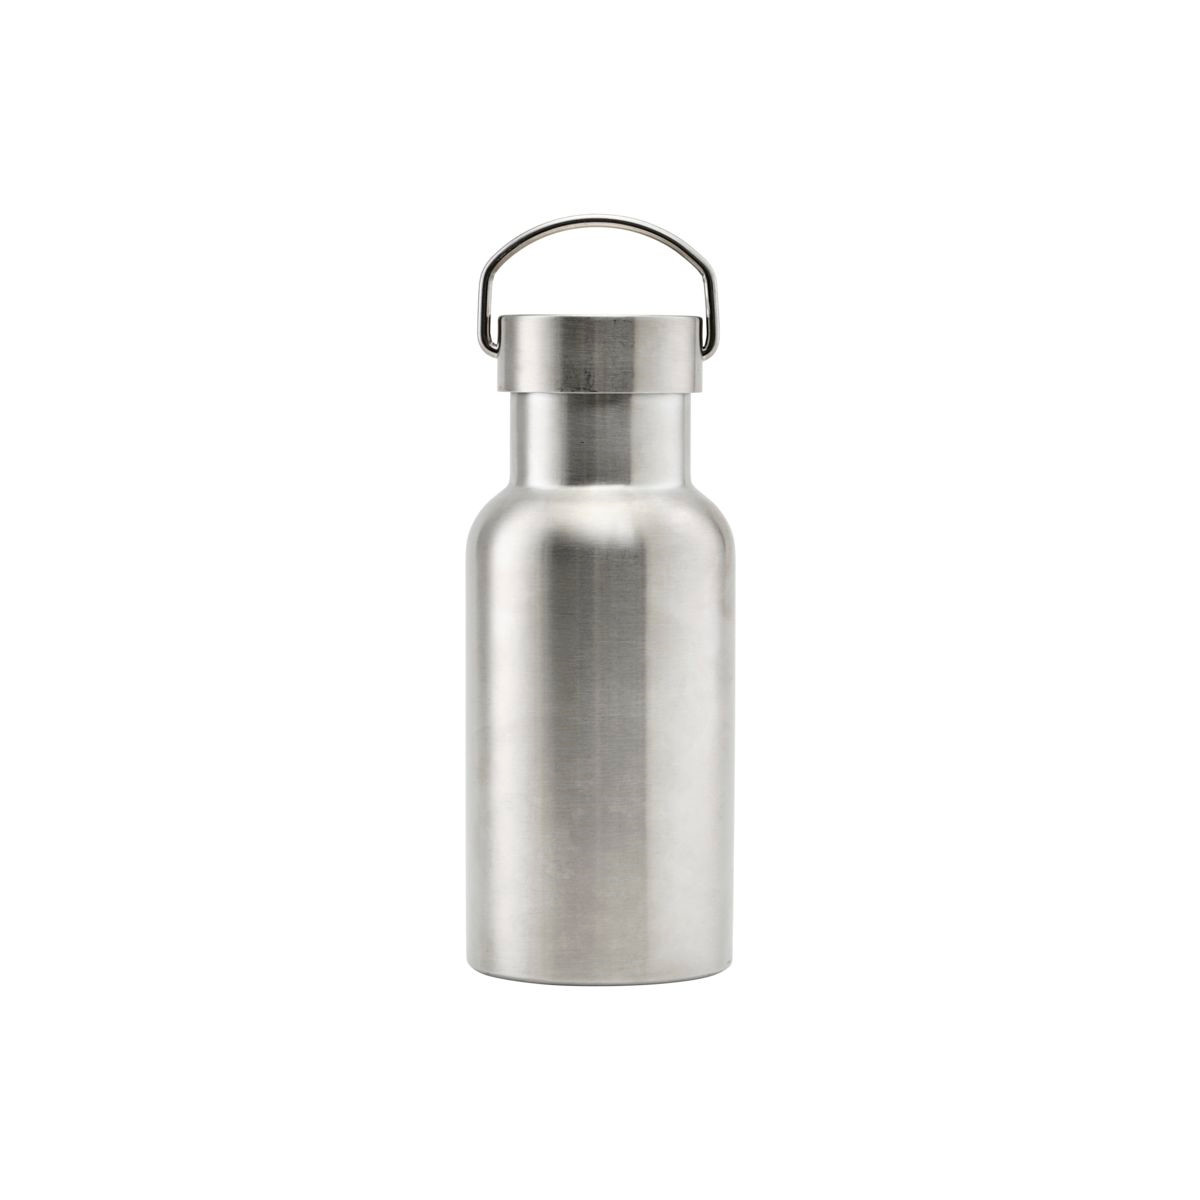 Nicolas Vahé Thermos Use 380 ml